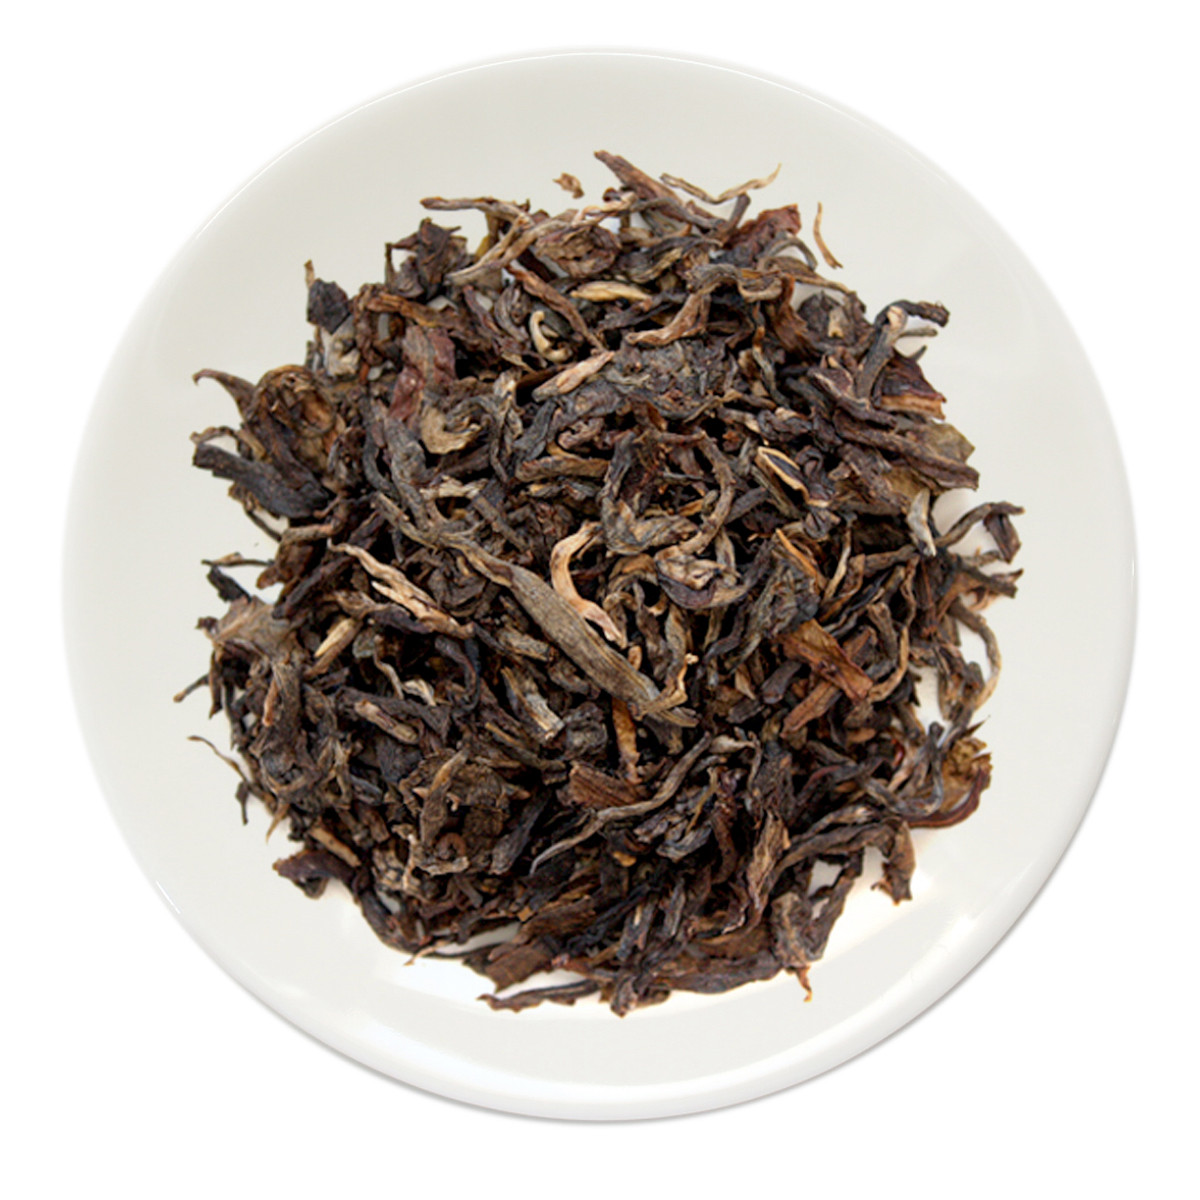 YiWu Mt. Raw Puerh (Sample, 5g)